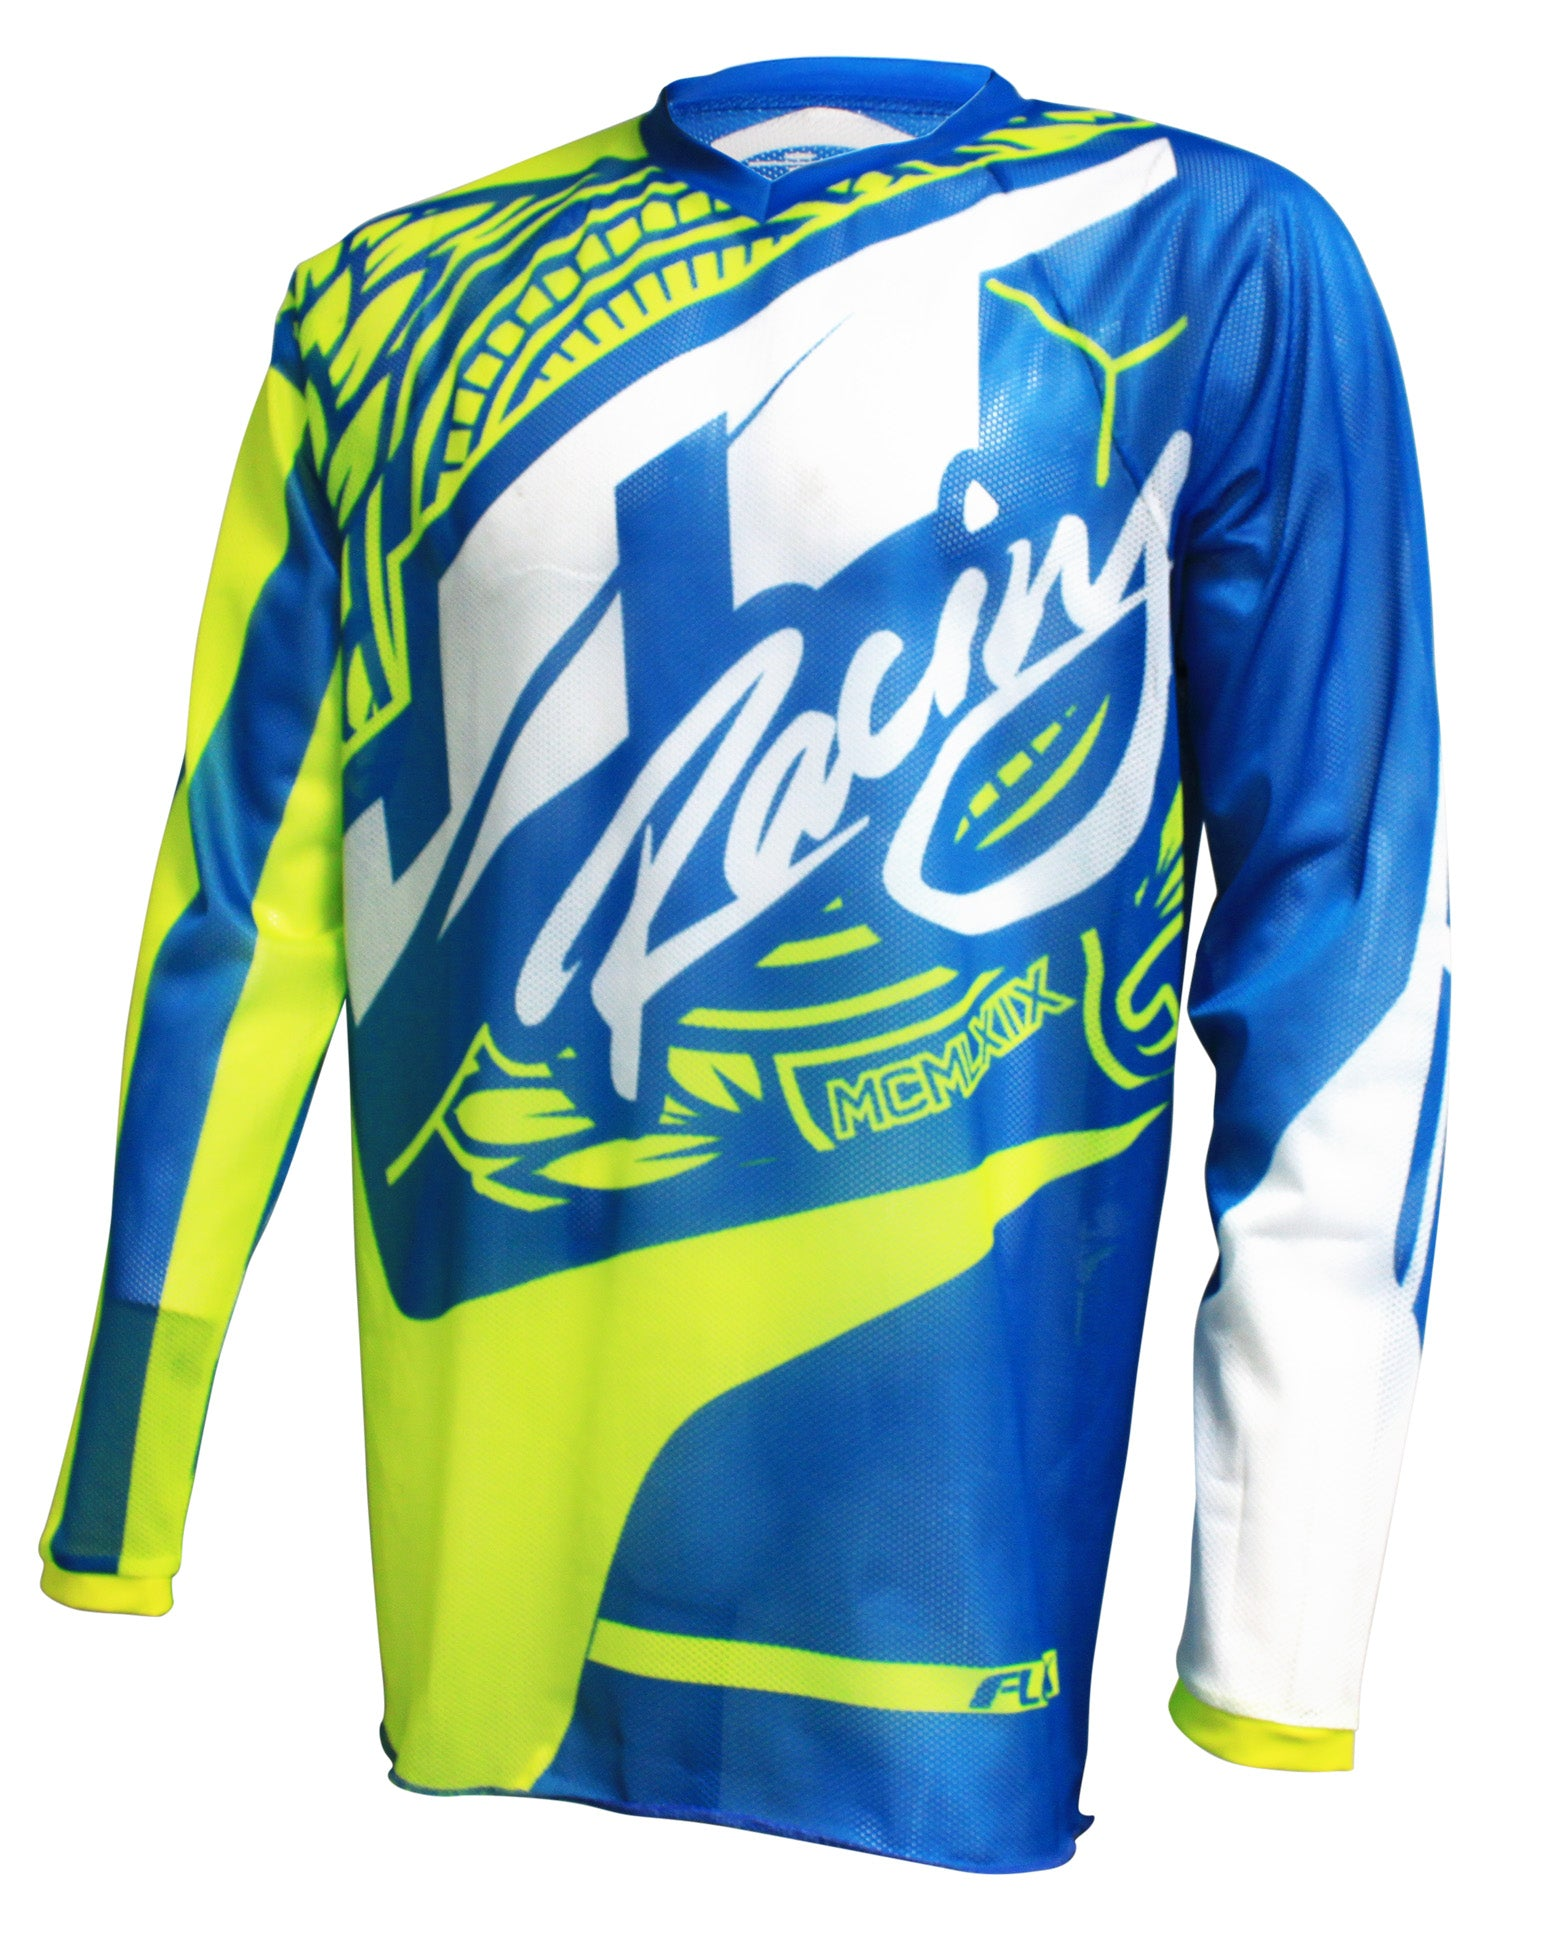 JT RACING USA-2017 Flex-Victory Neon Yellow/Cyan Jersey (Vented)